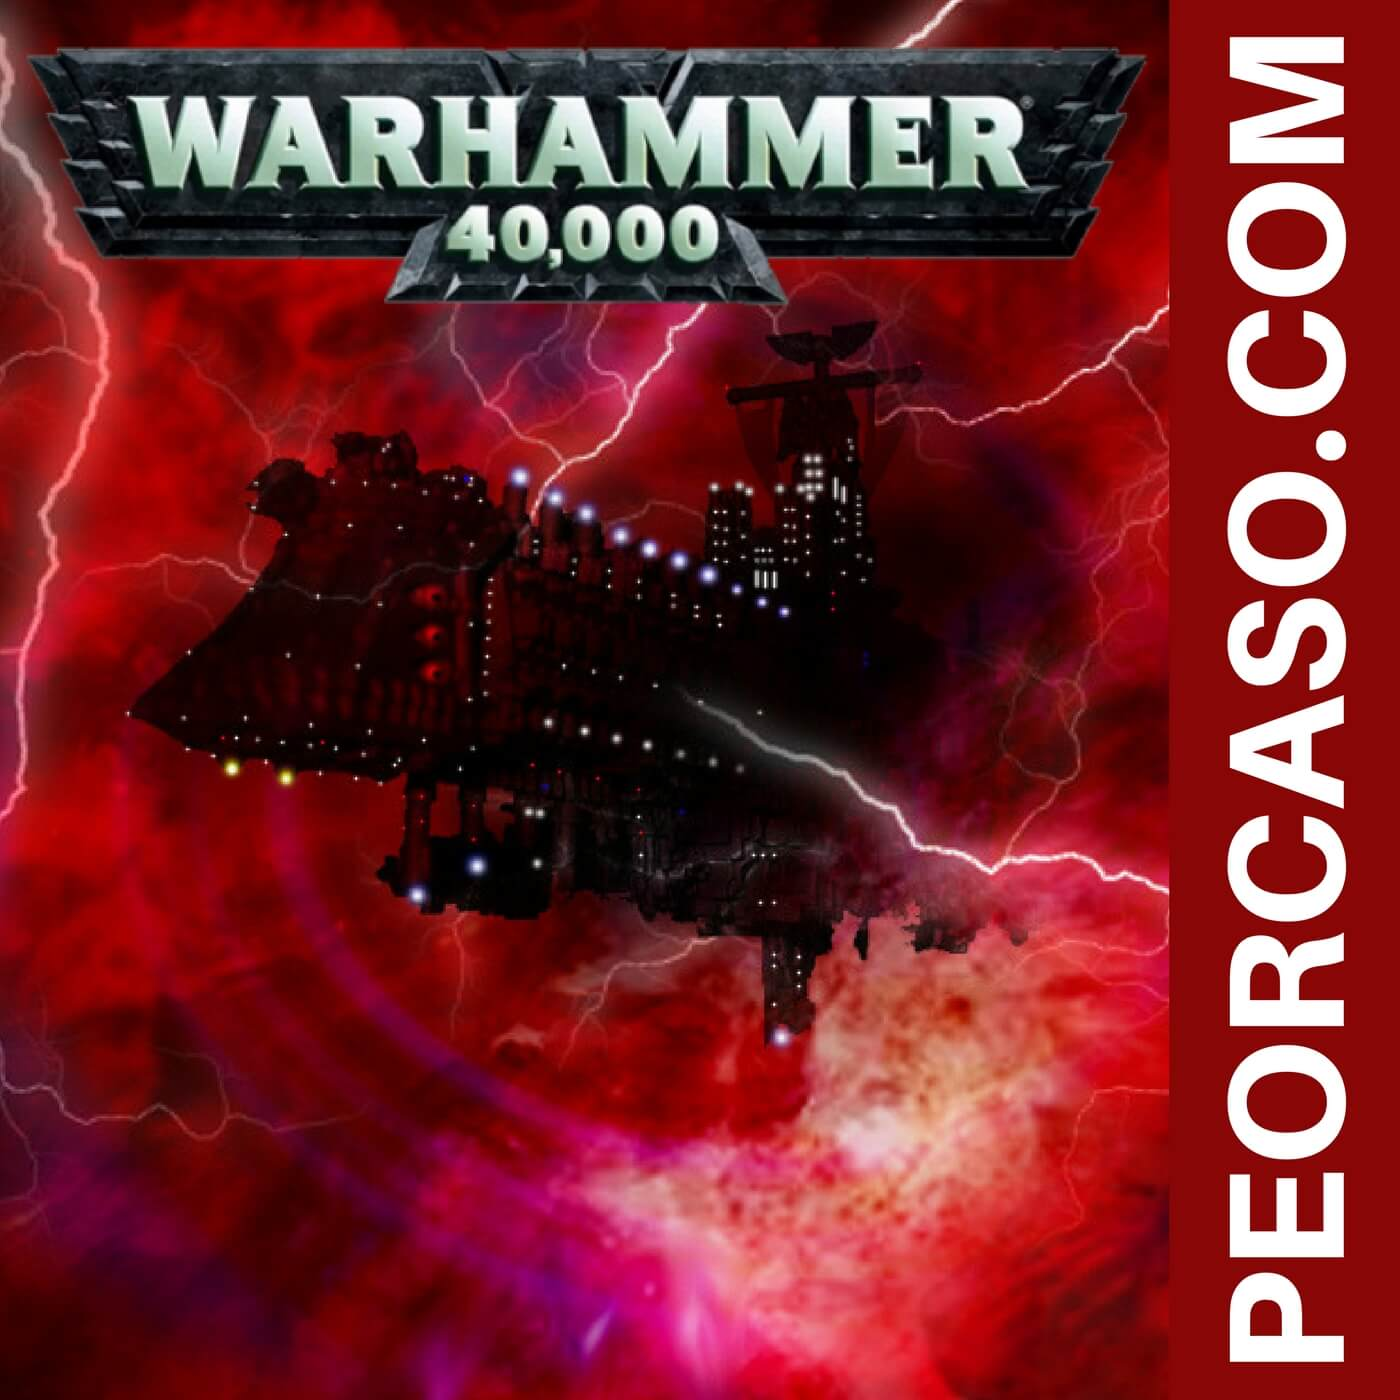 28 - Warhammer 40000 - Wargame, marines espaciales, warp, chaos, games workshop